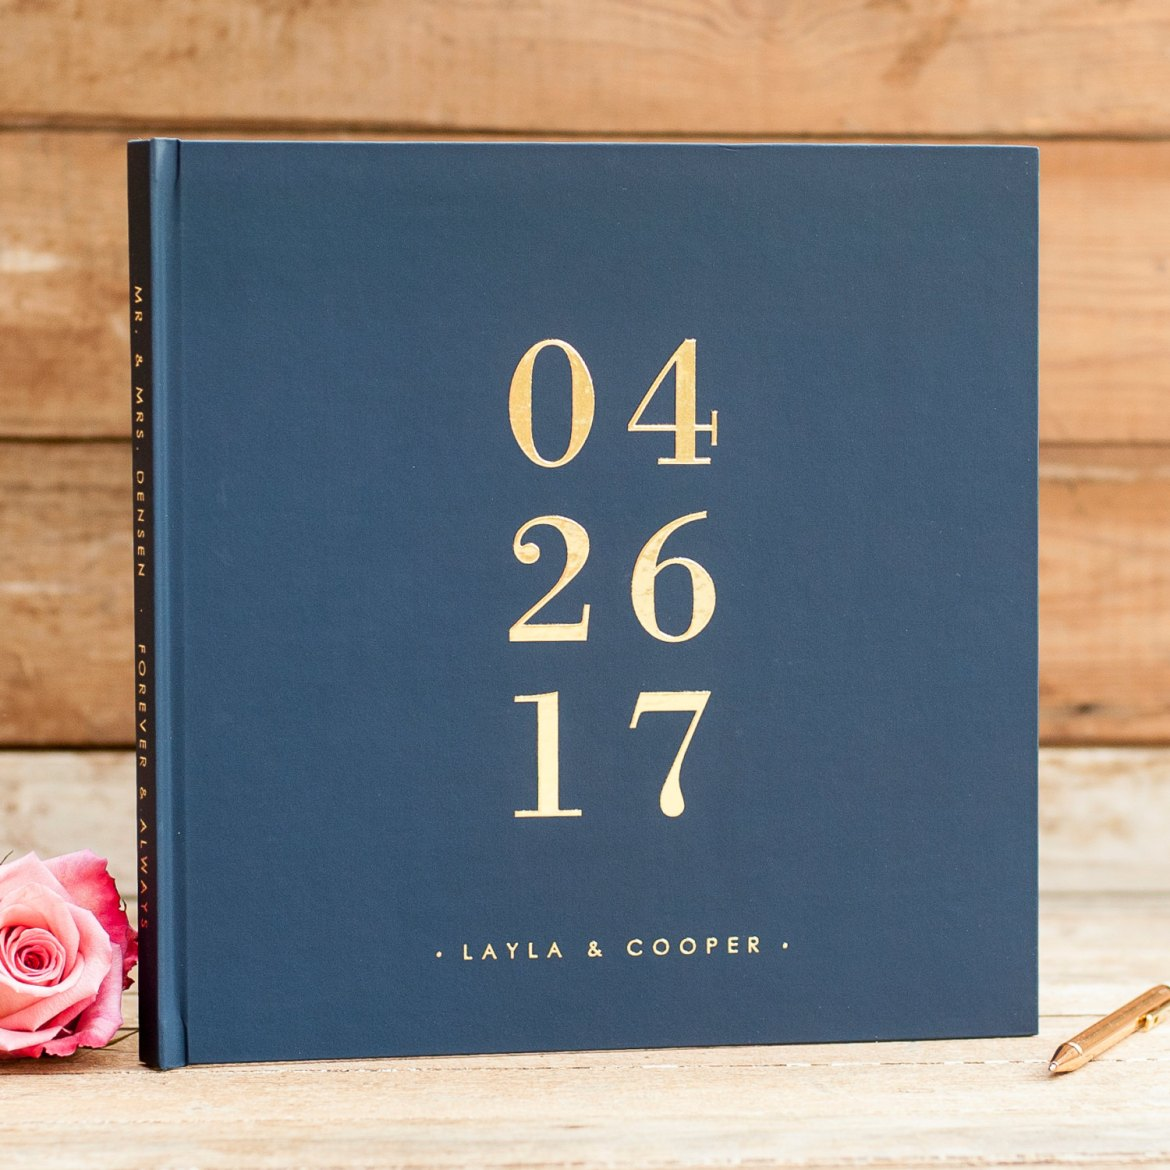 Gold Foil Guest Books - made from real foil! By Starboard Press. | http://emmalinebride.com/wedding/gold-foil-guest-books/